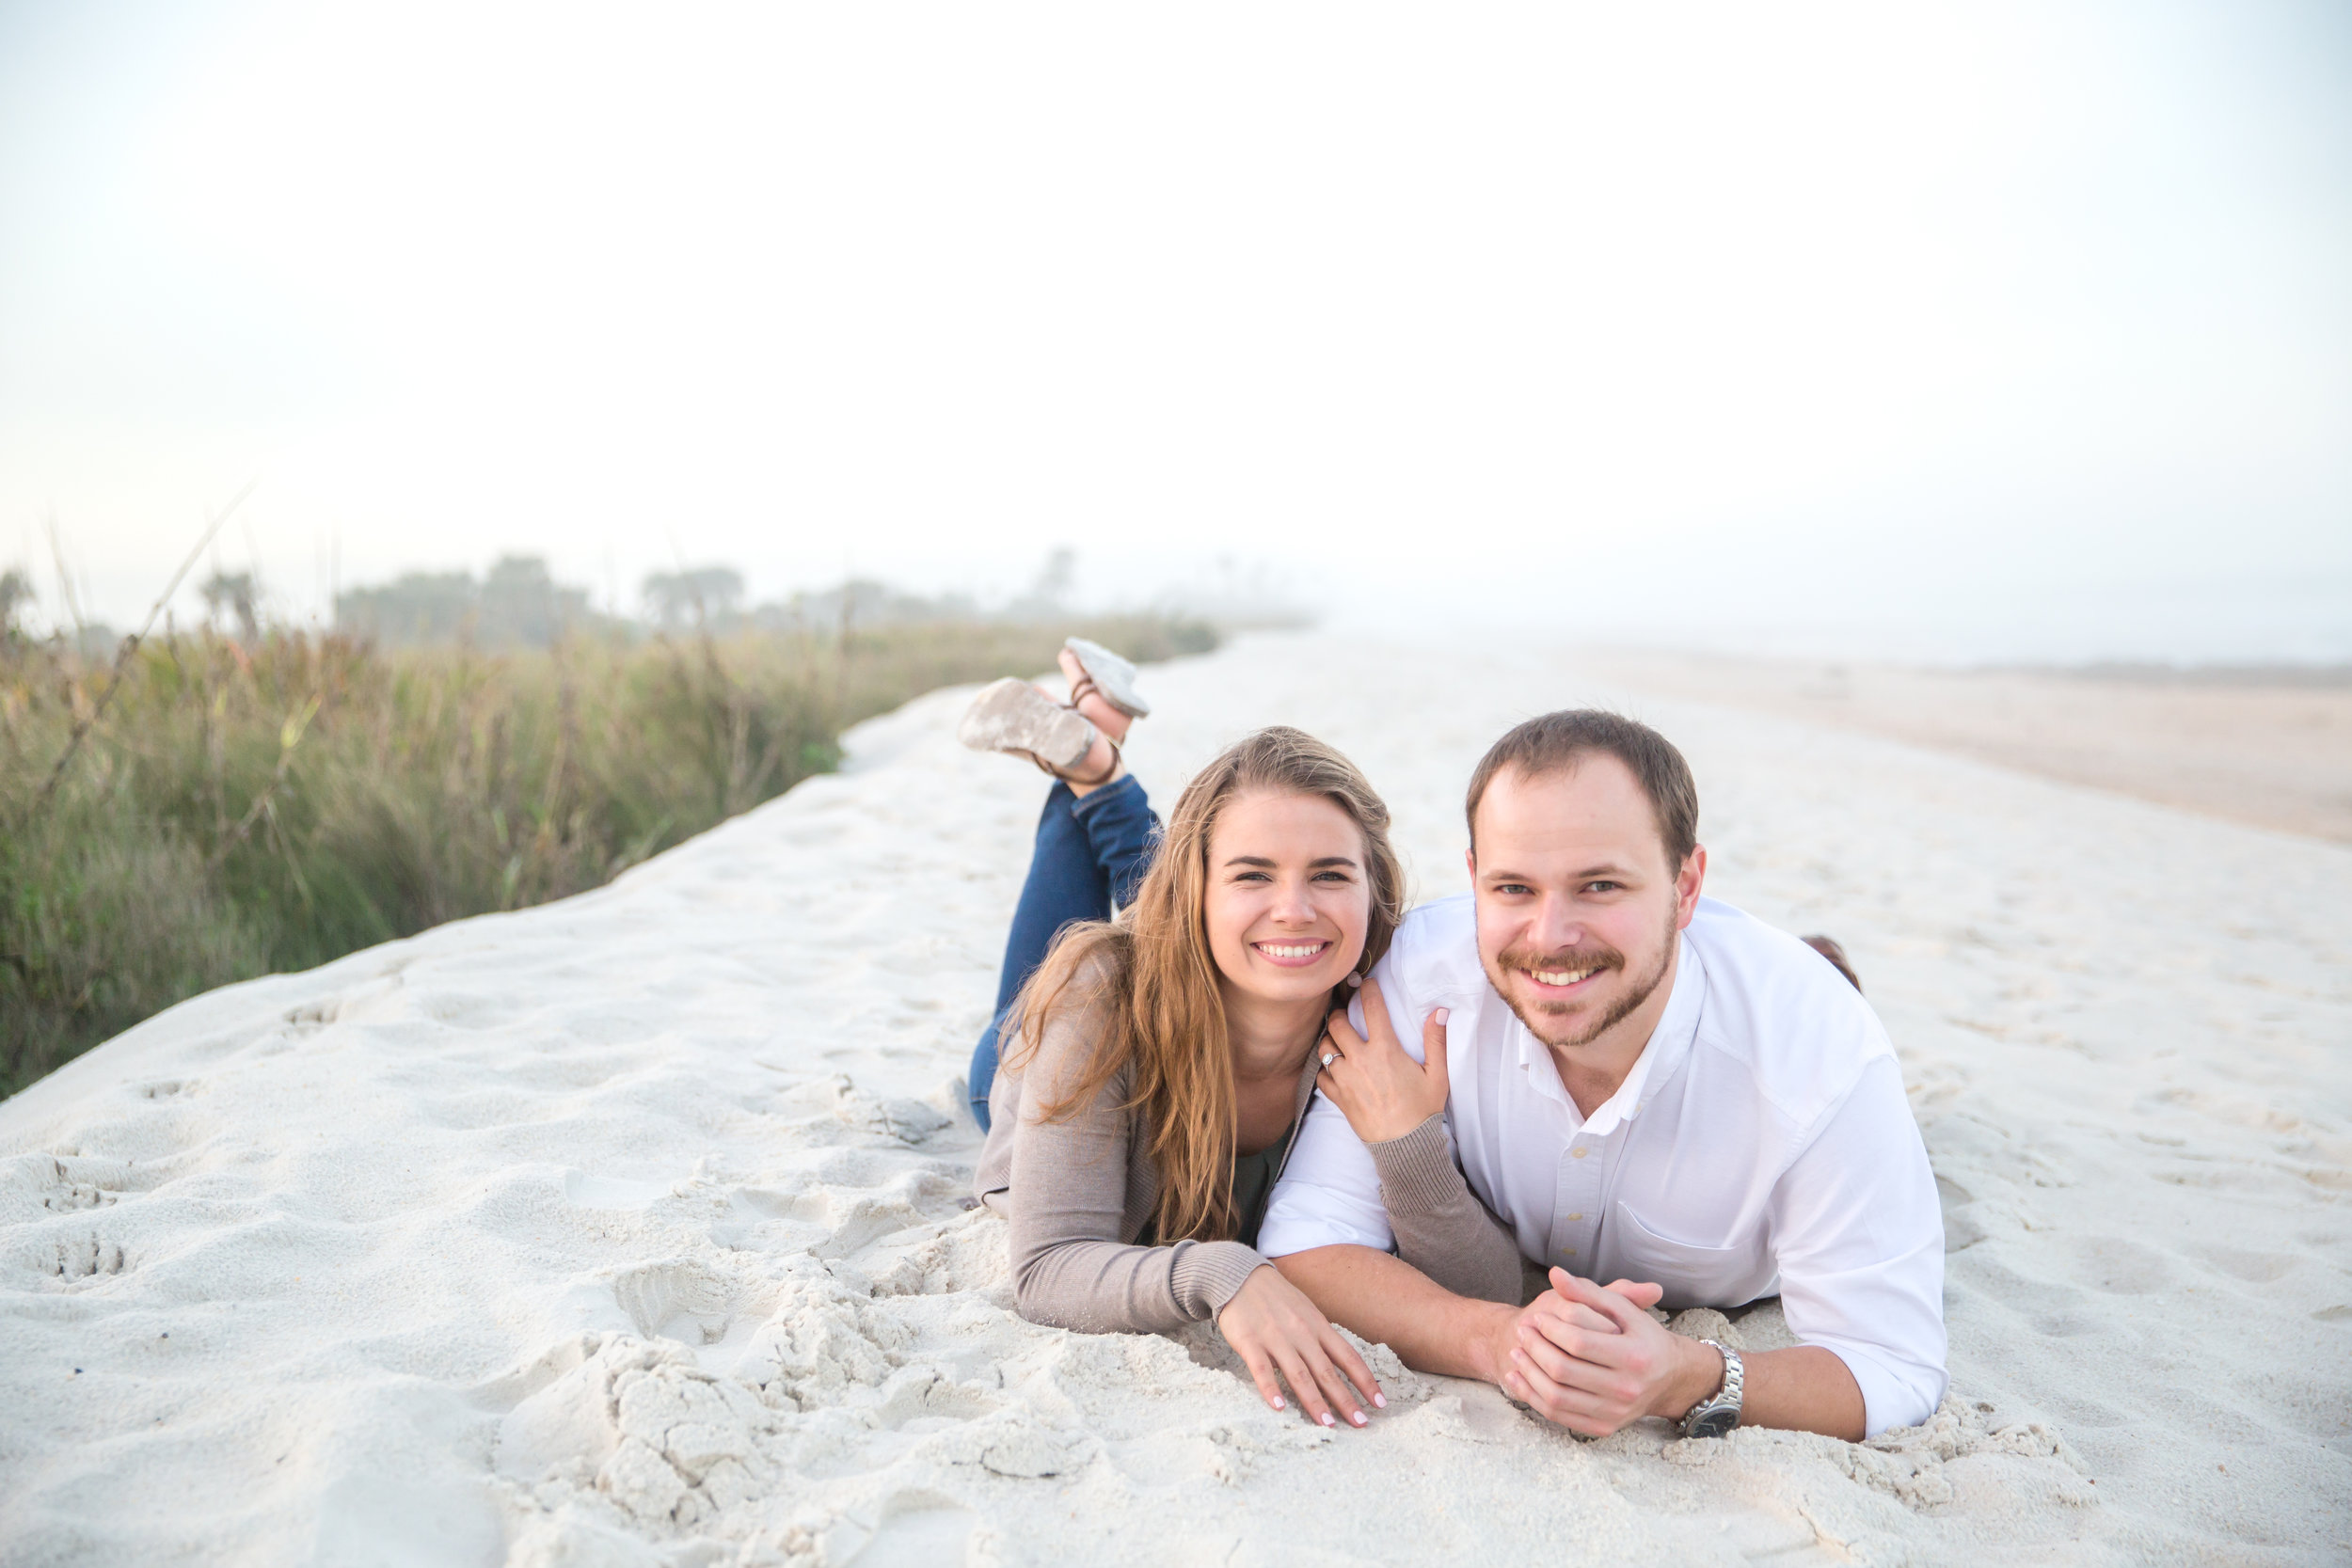 florida-engagement-session-washington-oaks-state-park-346.jpg